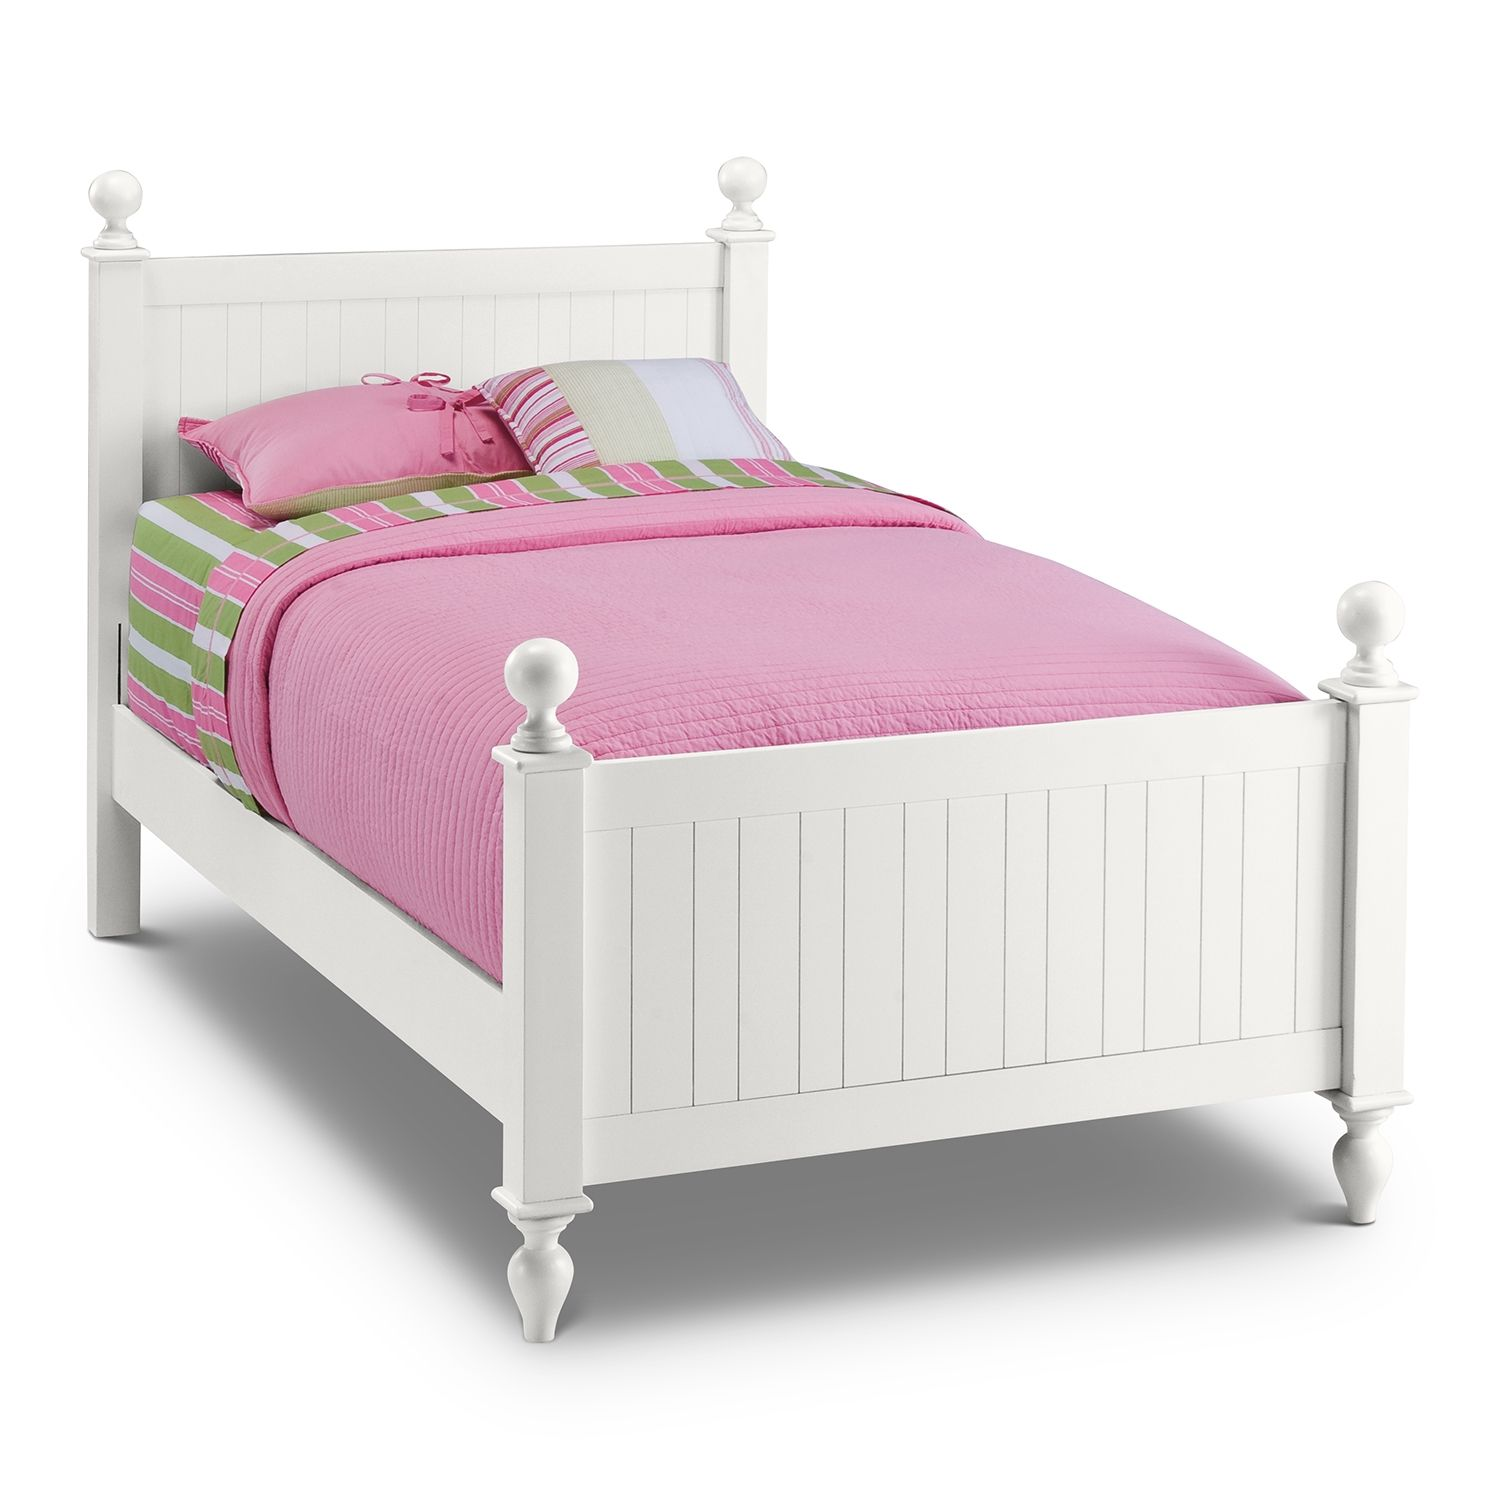 Awesome white twin bed for your kids bedroom headboards for Furniture for toddlers room